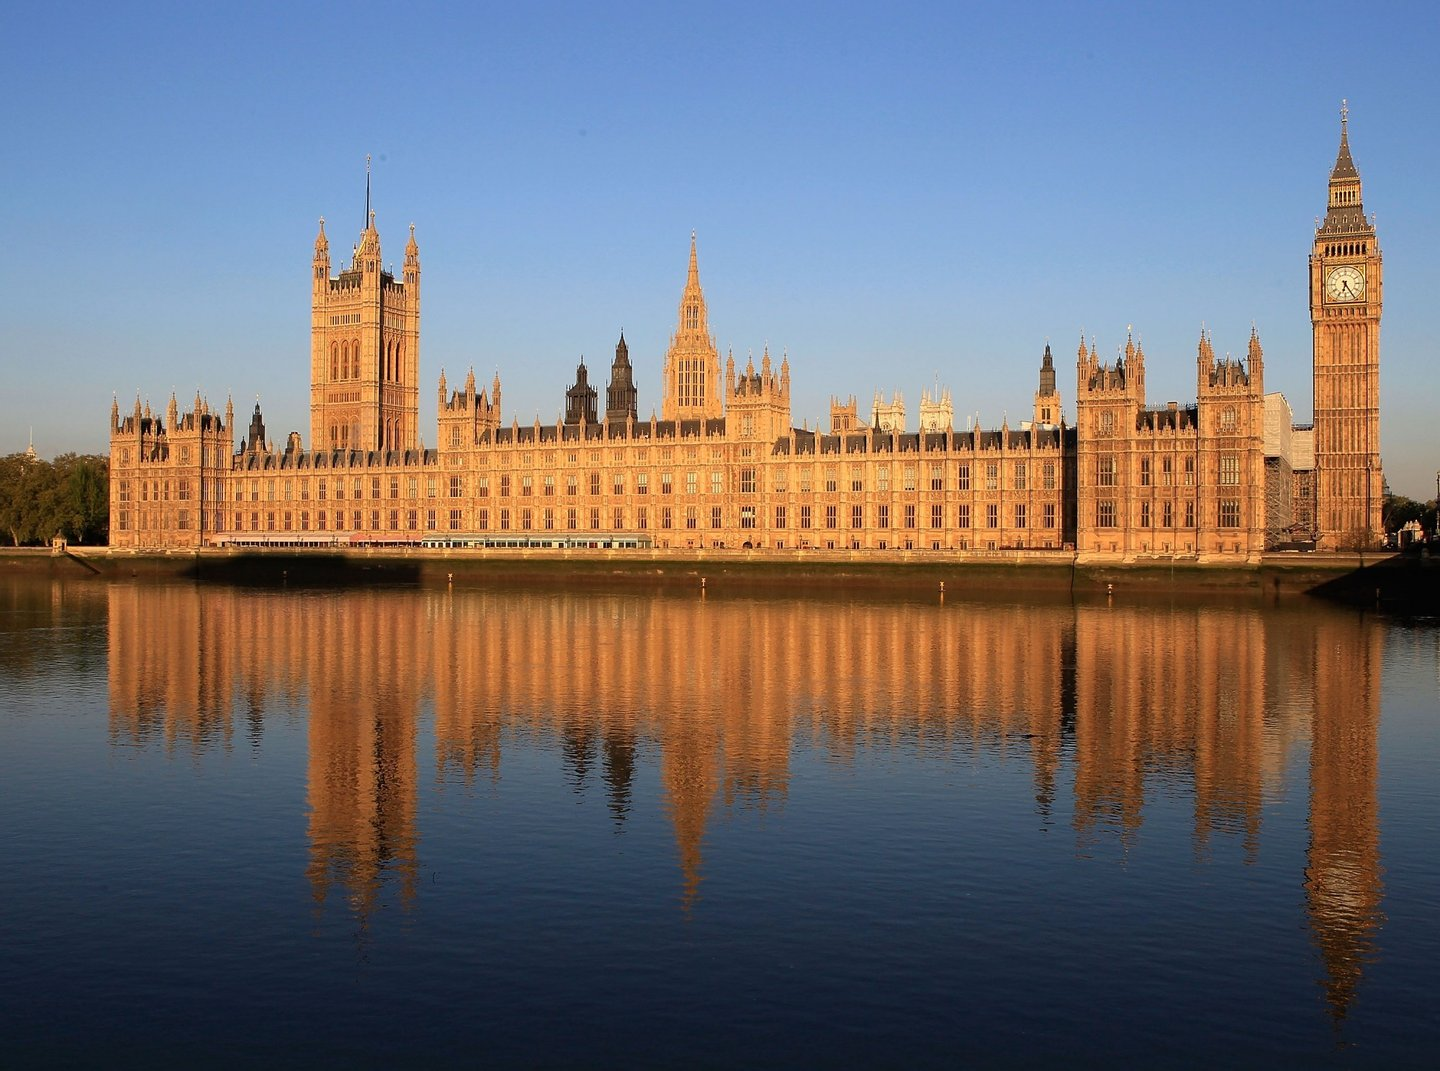 LONDON, ENGLAND - MAY 13: The Houses of Parliament are bathed in the early morning sunshine on May 13, 2010 in London, England. New Prime Minister David Cameron is holding his first full cabinet meeting today. (Photo by Christopher Furlong/Getty Images)